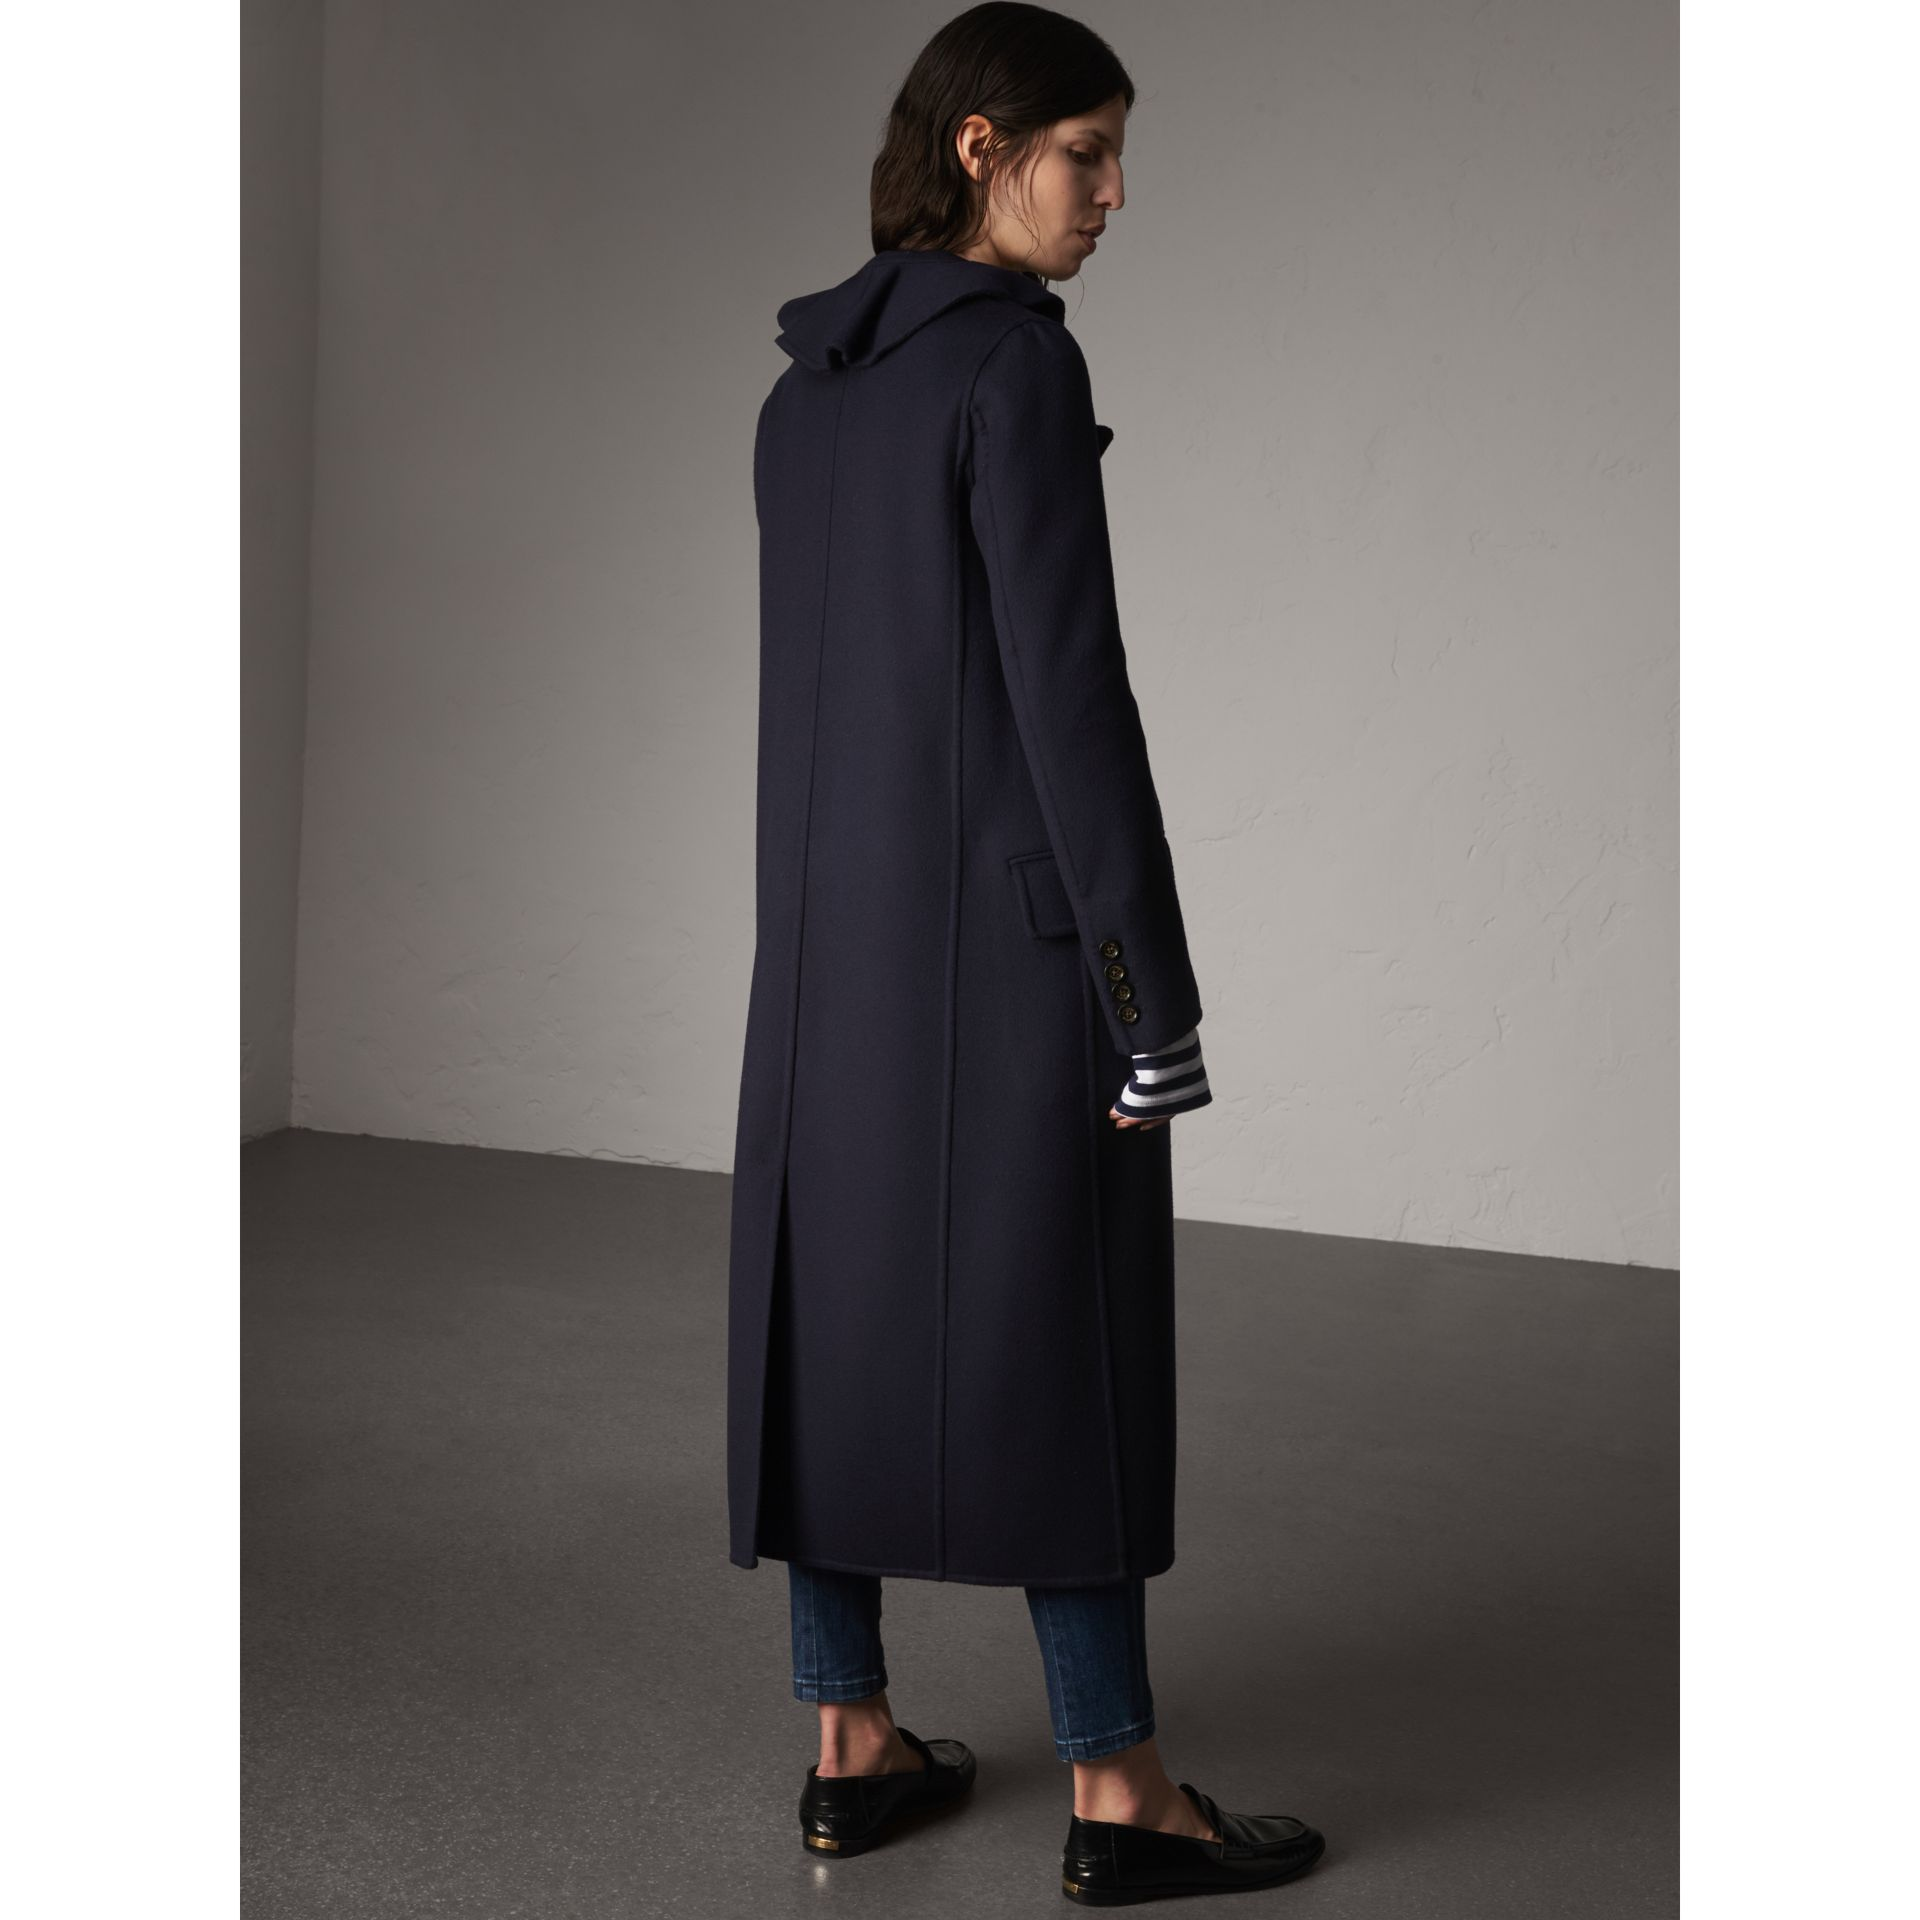 Ruffled Collar Wool Cashmere Coat in Navy - Women | Burberry United Kingdom - gallery image 3